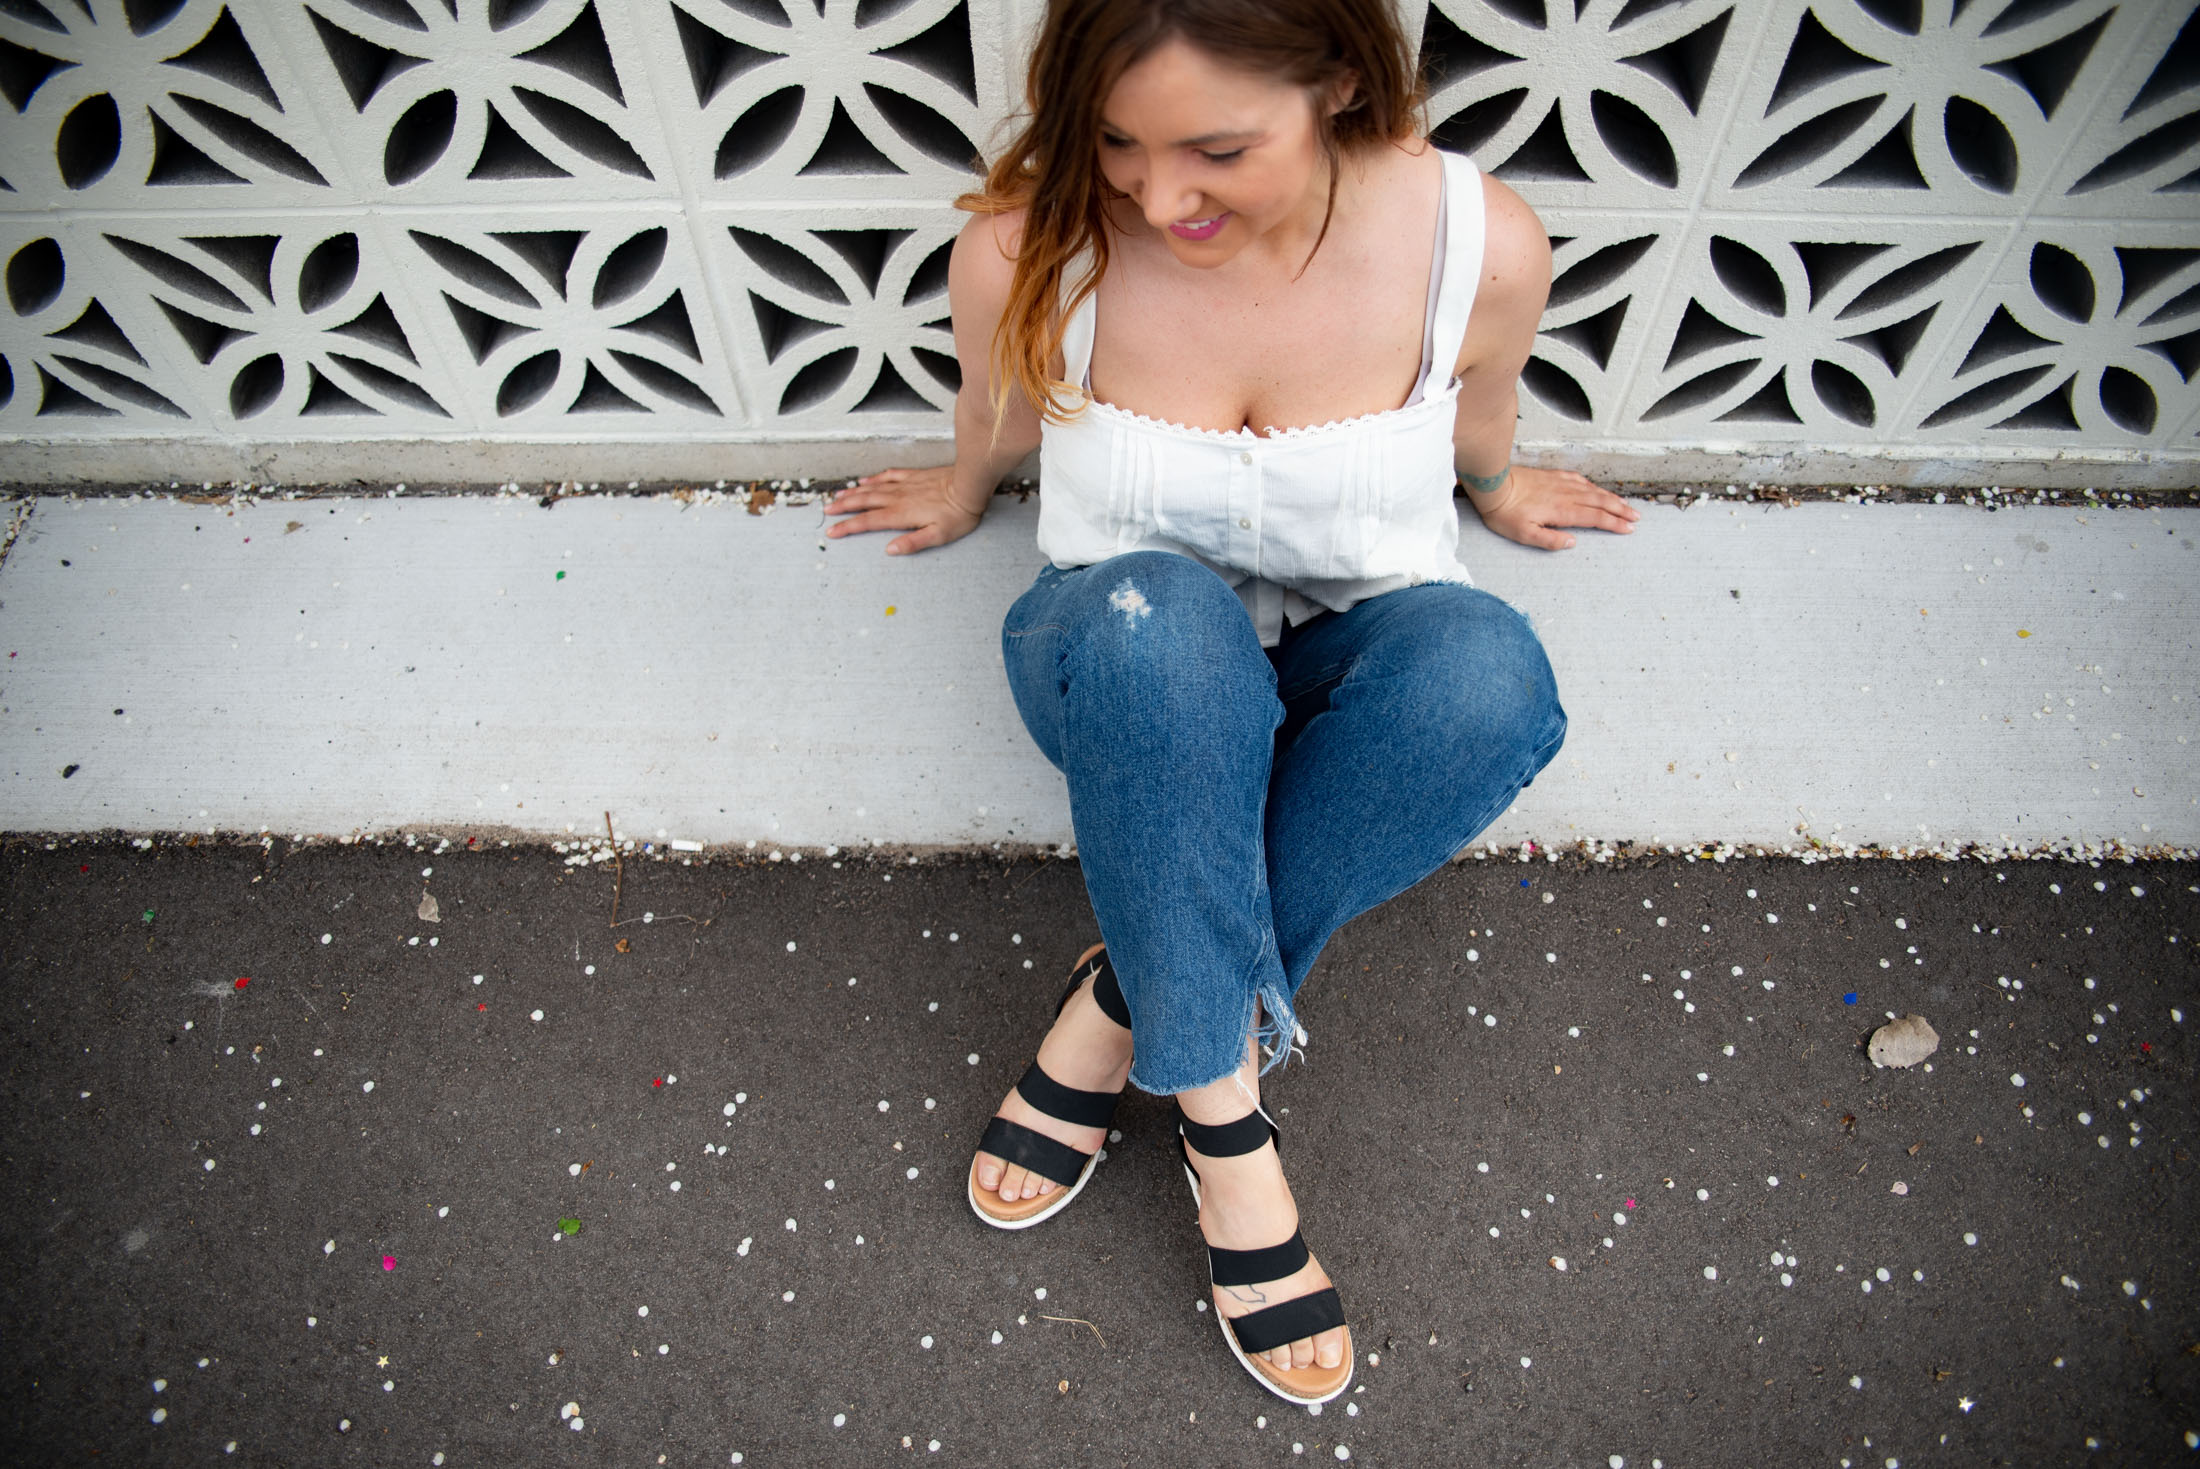 The comfiest platform wedge sandal of your dreams? Steve Madden is all over it — & so is TME. These cute sandals are walkable & perfect for everyday.